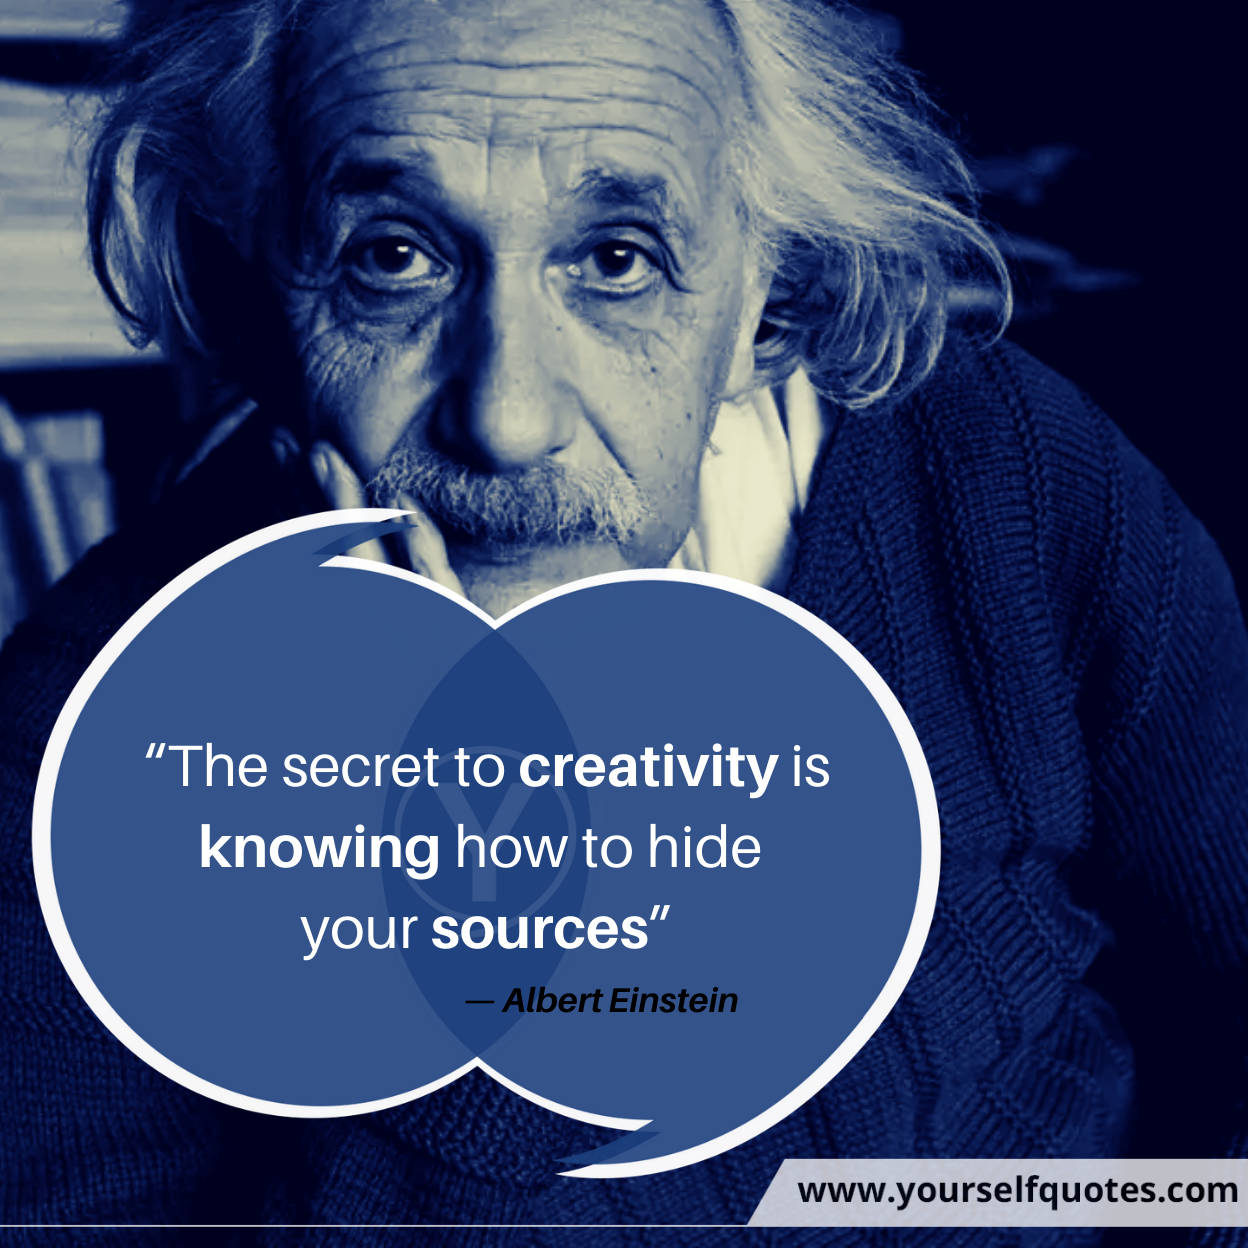 Albert Einstein Quotes for Creativity